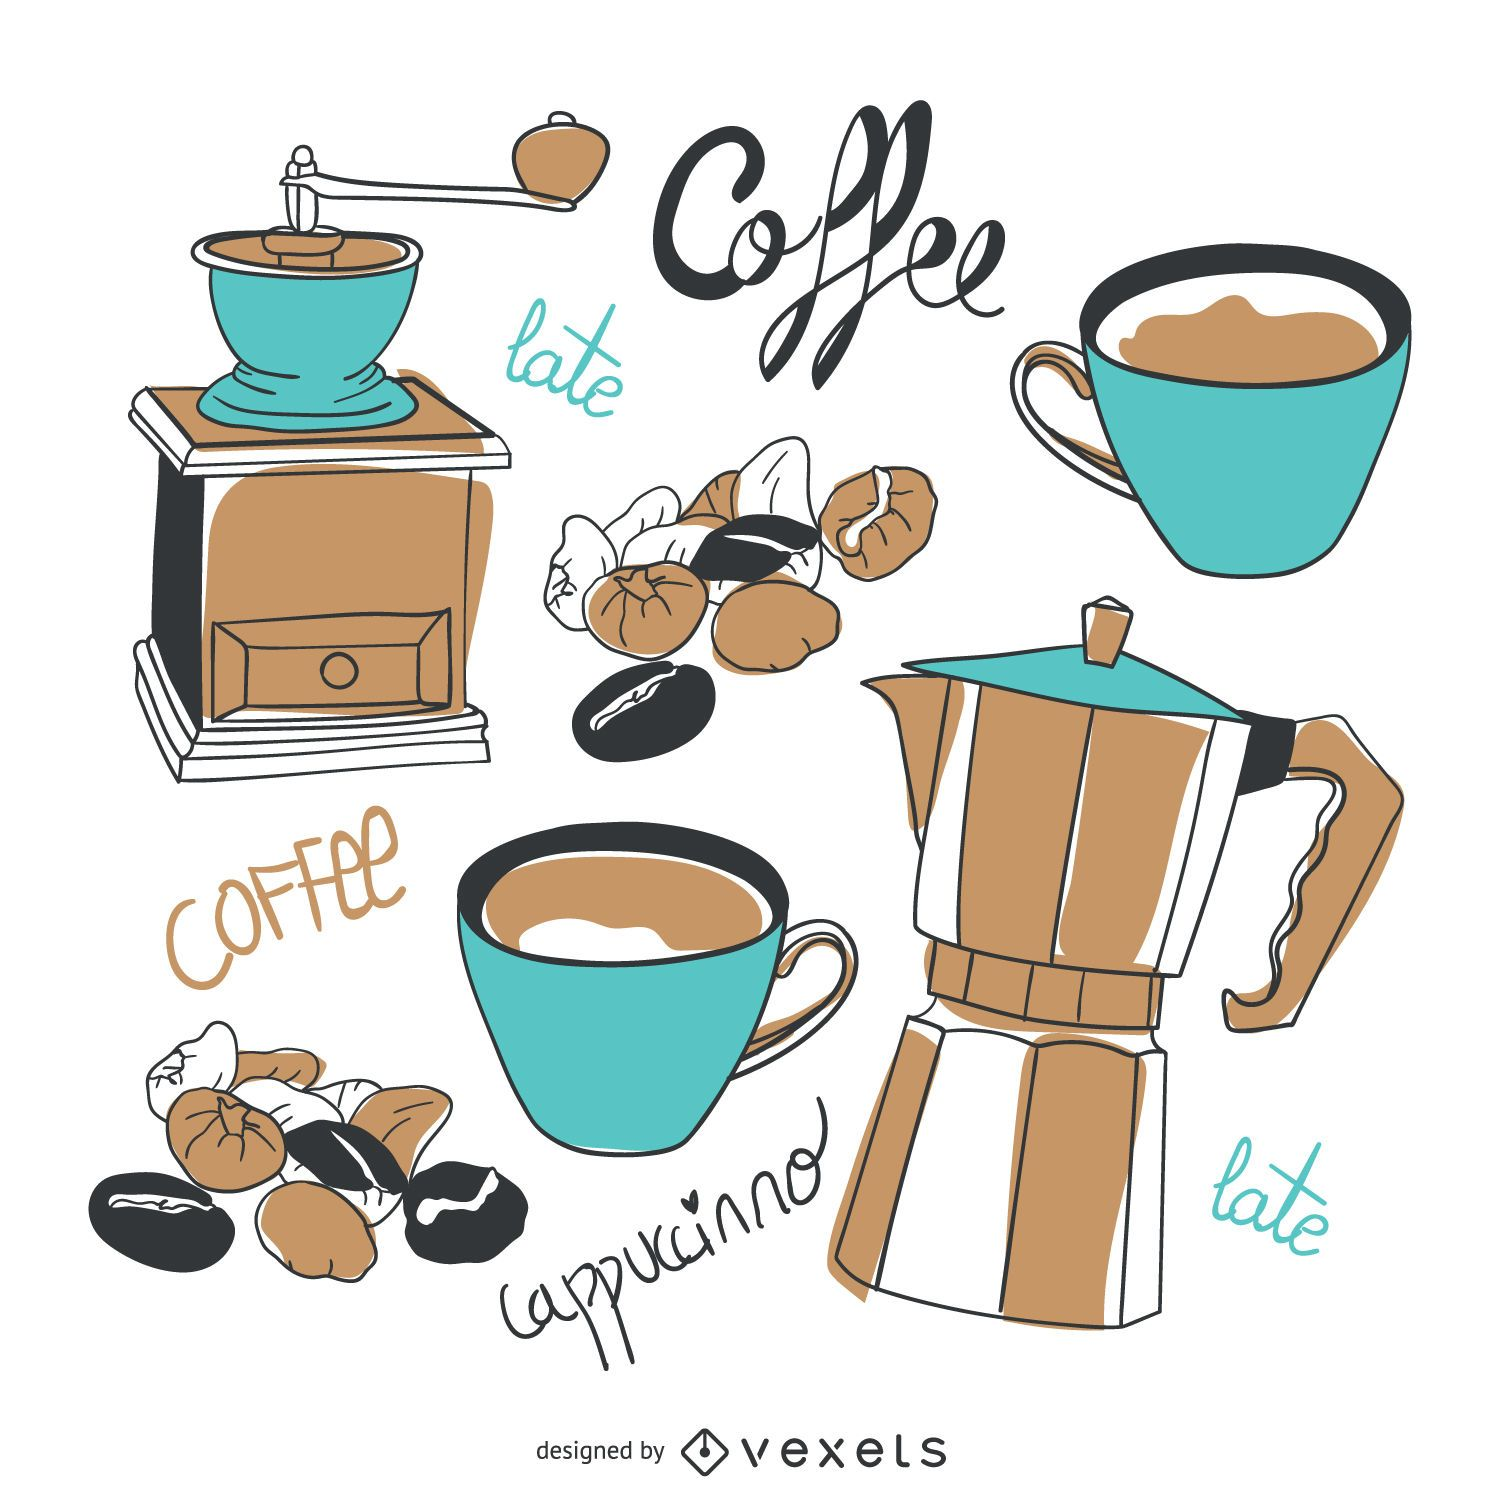 Coffee elements set in hand-drawn style